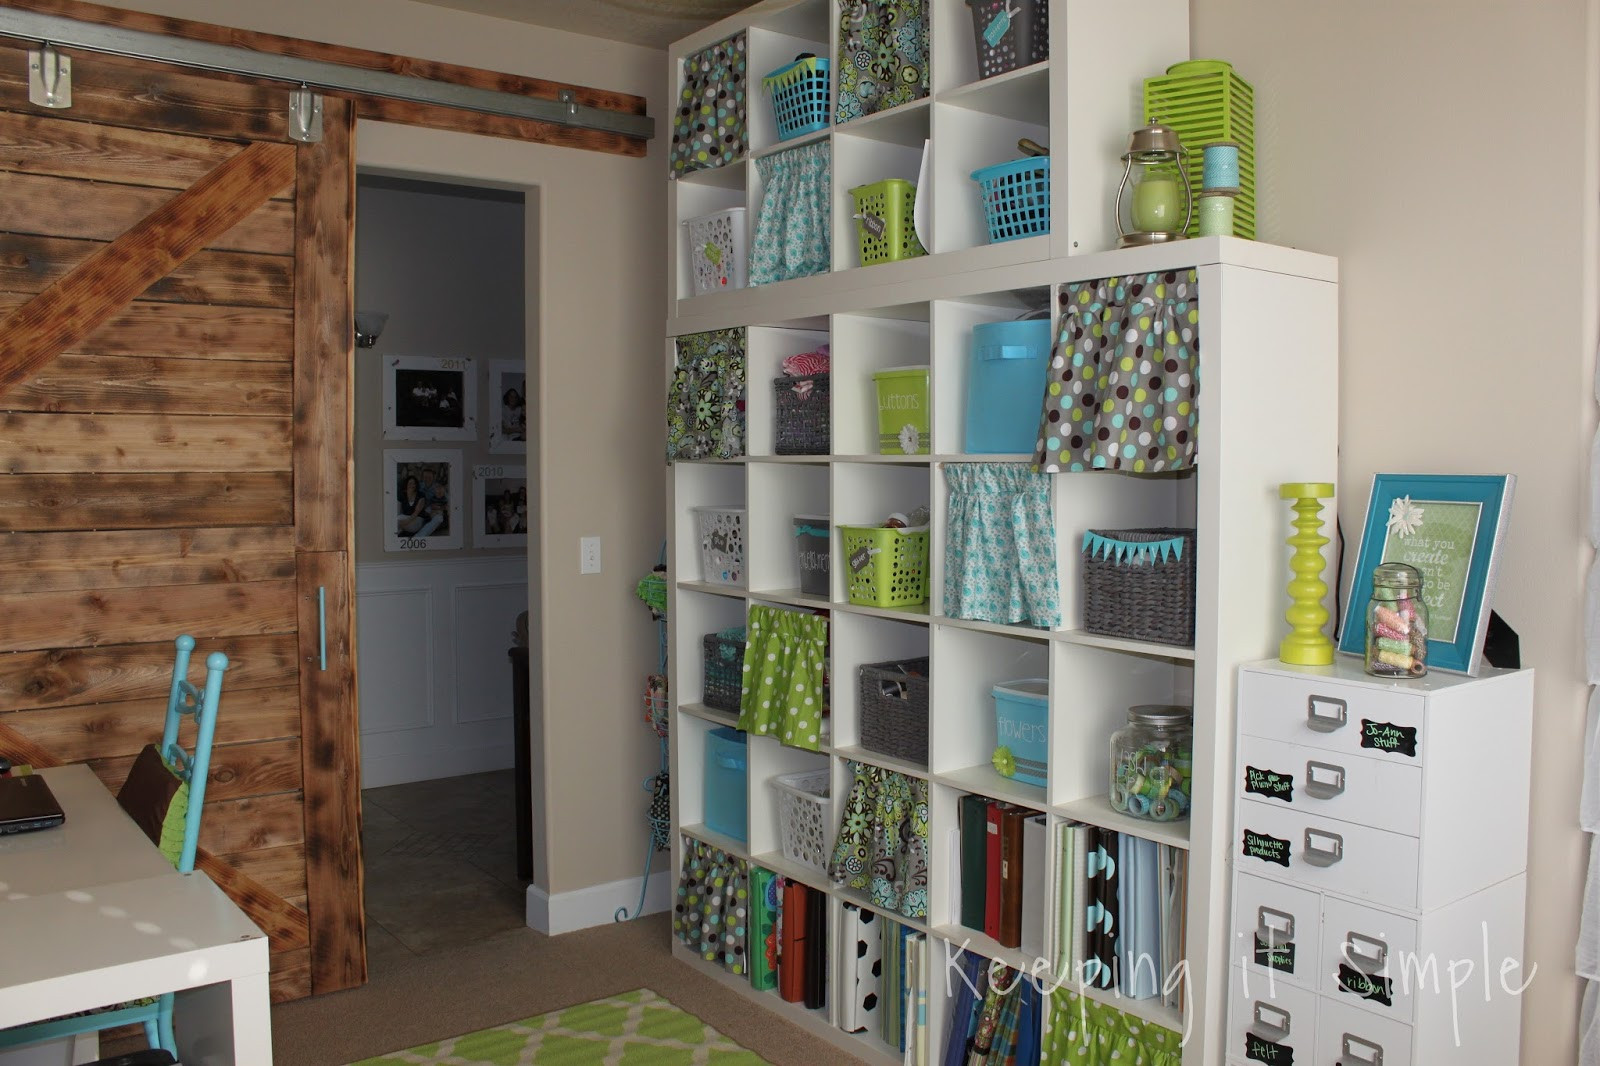 Best ideas about Craft Room Decor . Save or Pin Keeping it Simple Ikea Expedit Shelf in my craft room Now.